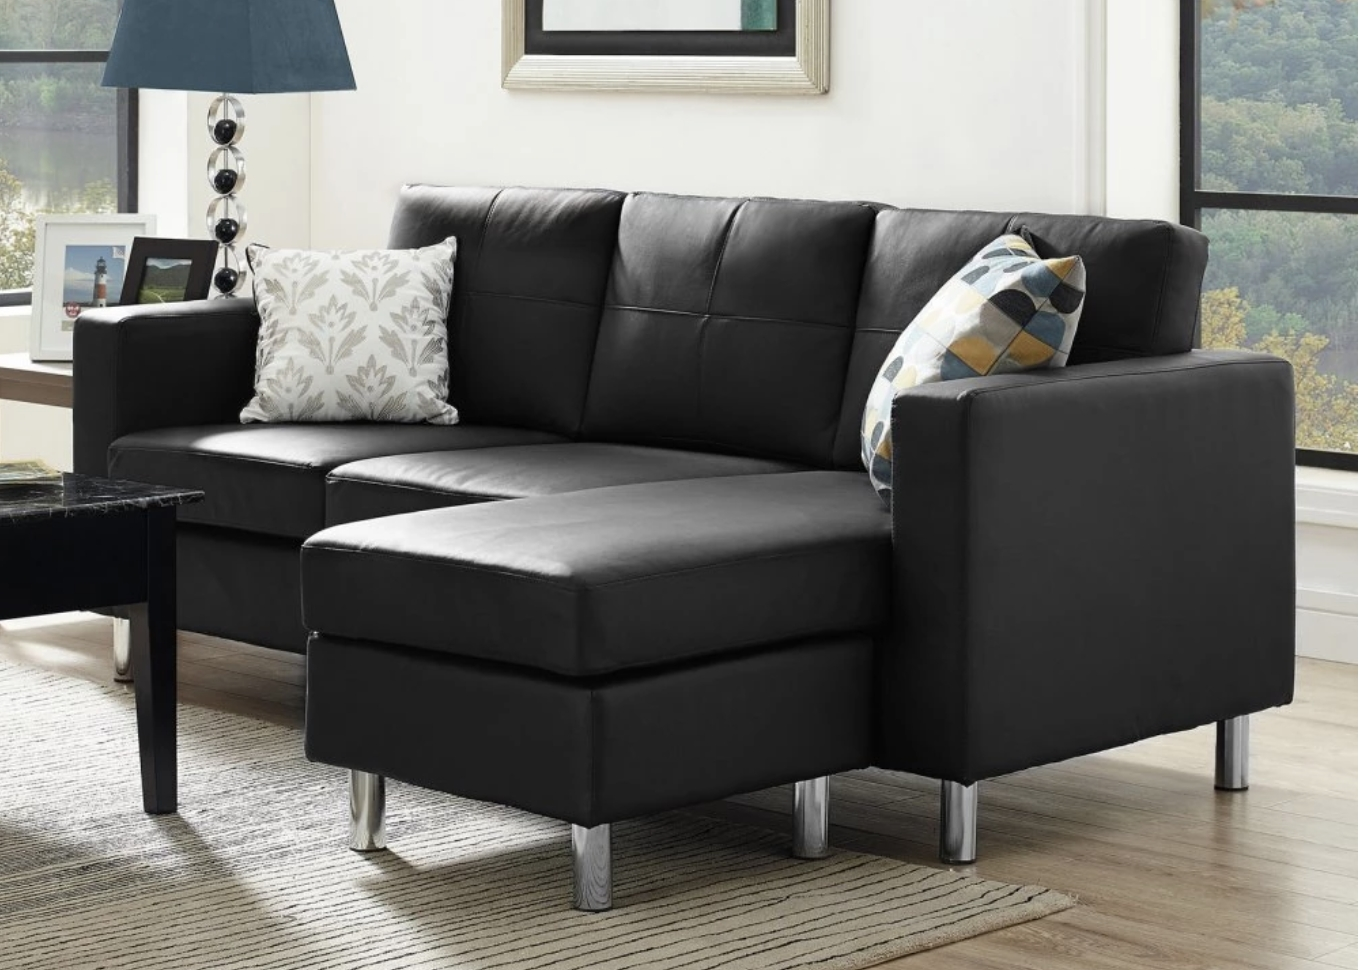 Well Known Sectional Sofas For Small Rooms Within 75 Modern Sectional Sofas For Small Spaces (2018) (View 2 of 20)